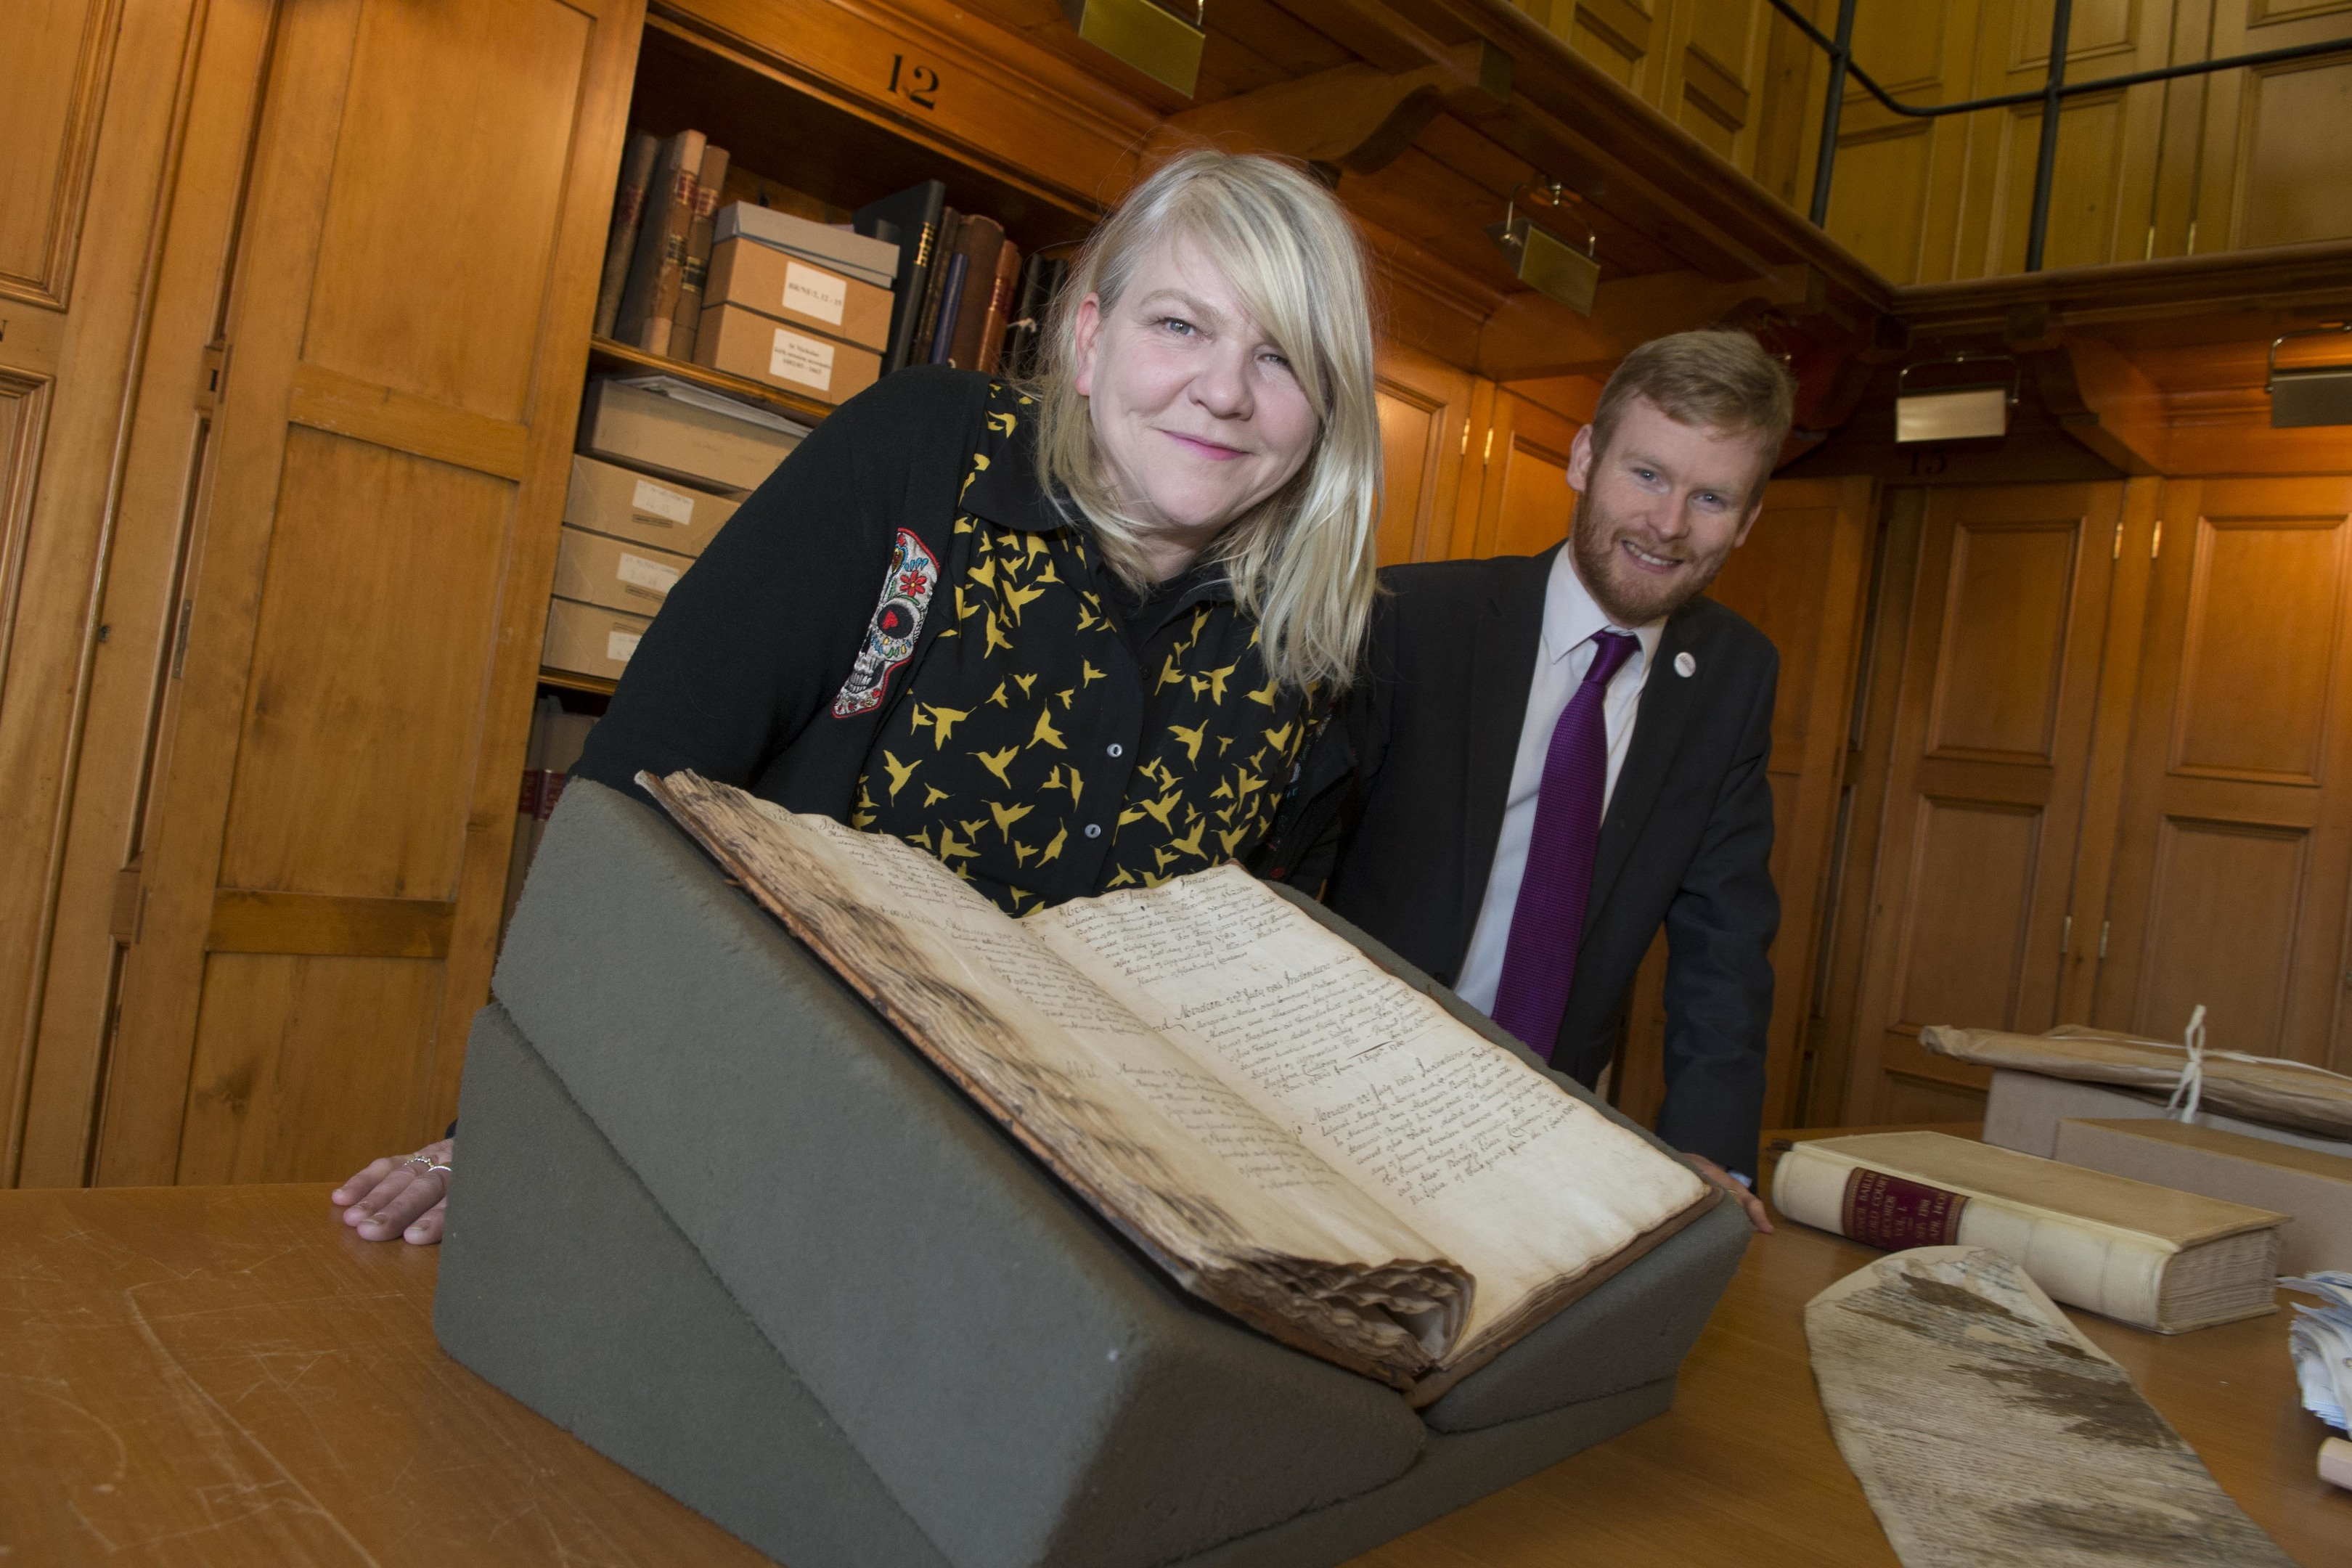 12/02/18 Nu-Art artist CARRIE REICHARDT-visietd aberdeen City Archives  to work on her art for nu-Art carrie with Councillor Ross Grant-